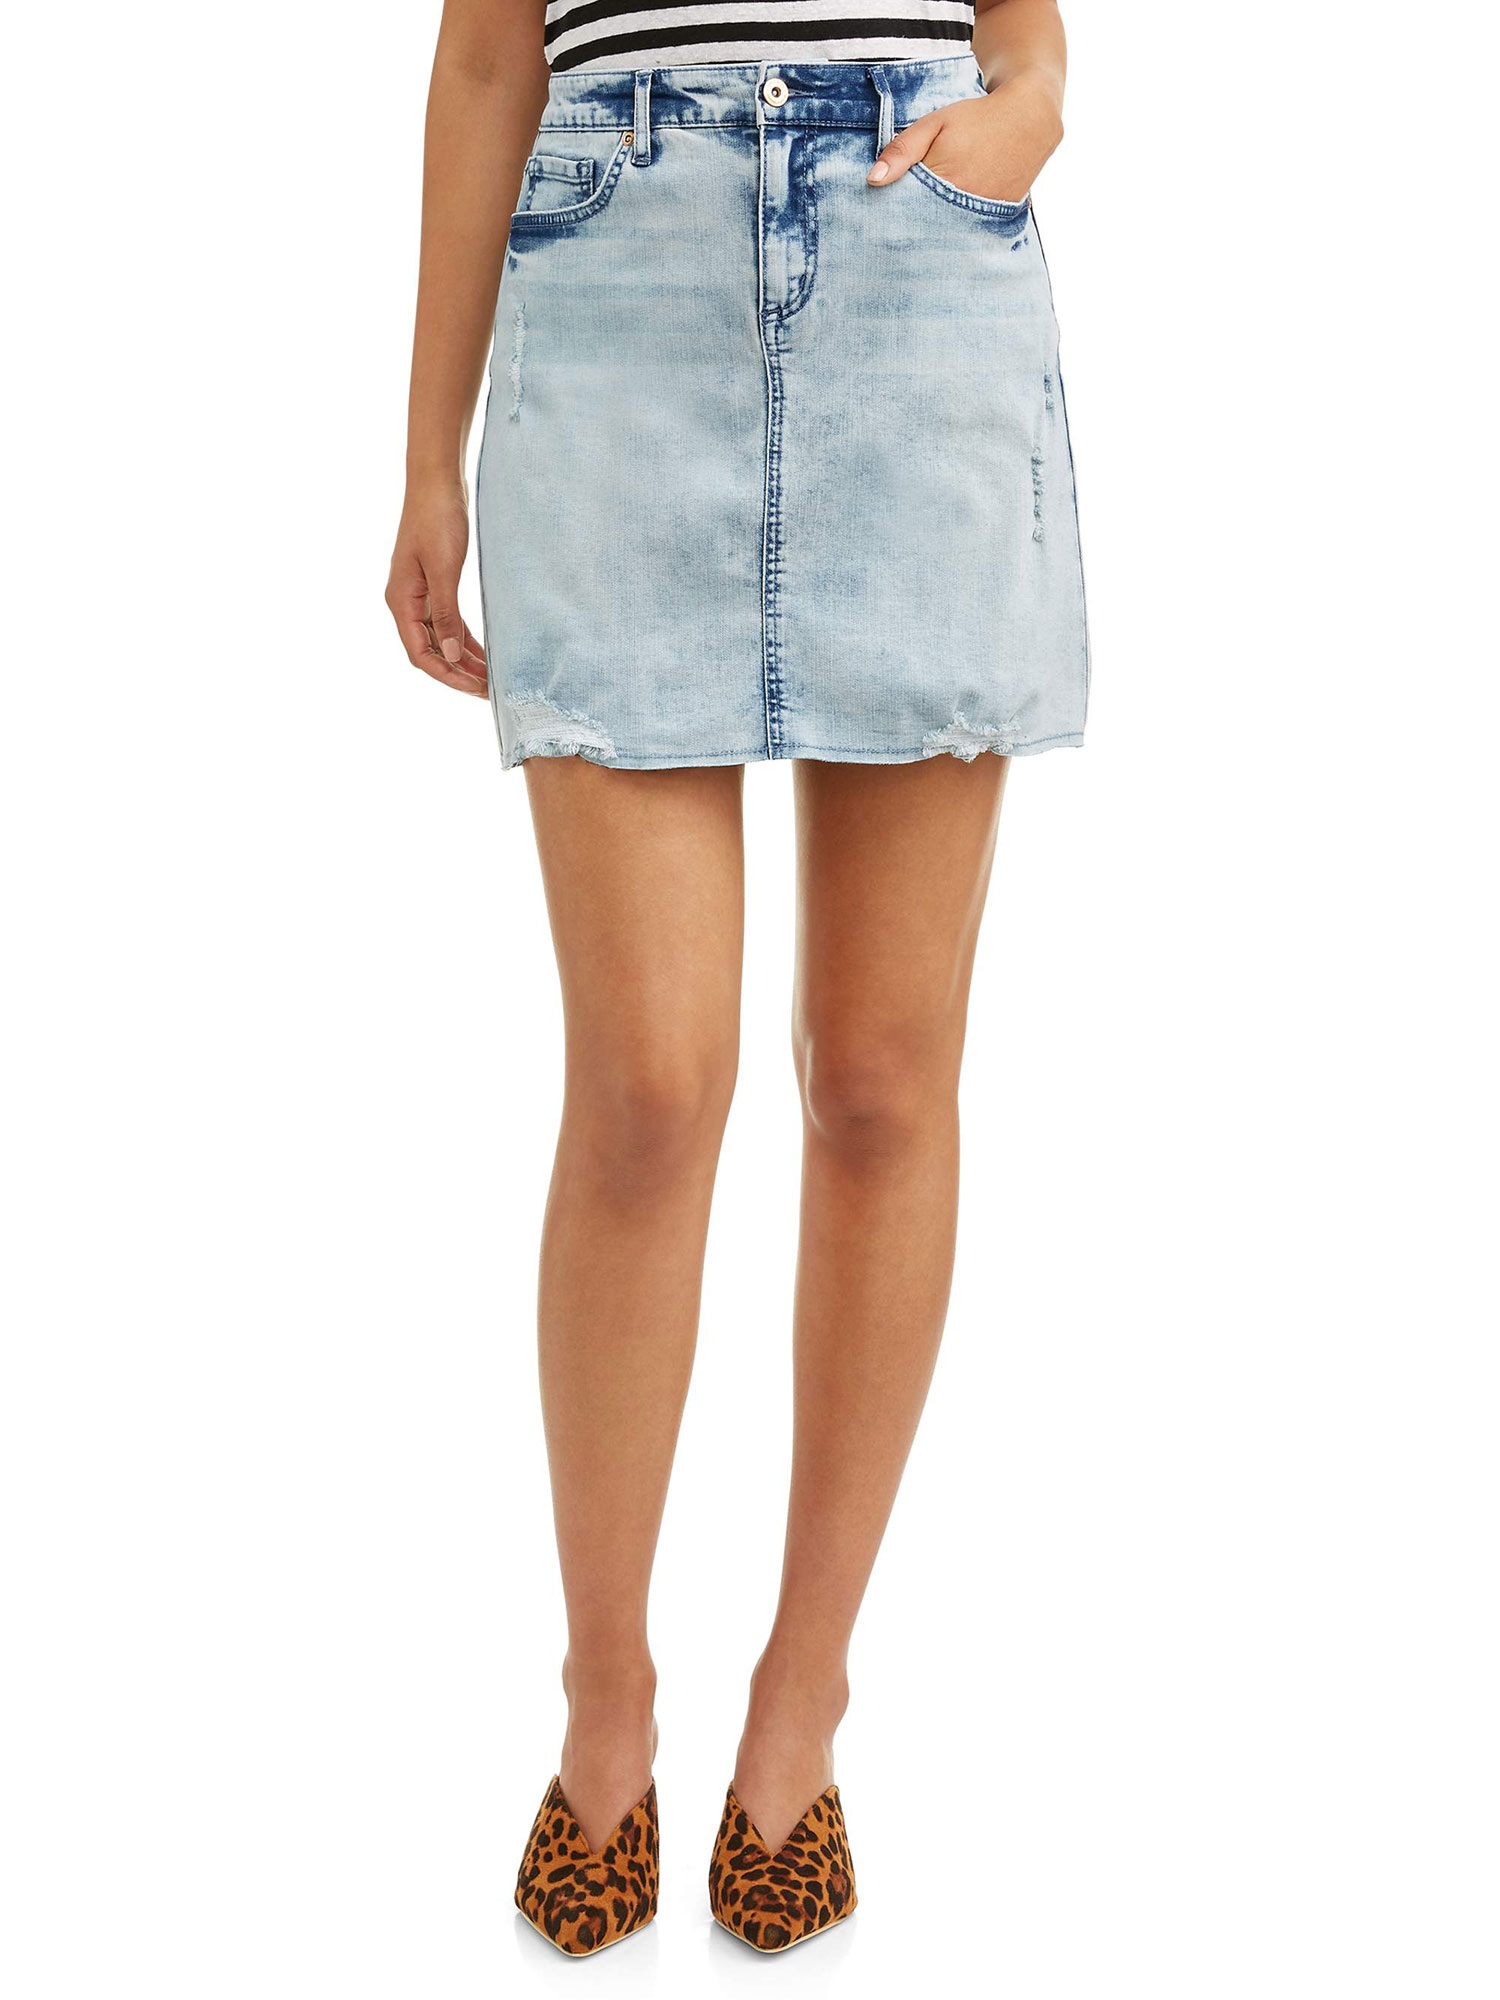 Sofia Vergara Spring Collection walmart - Just in time for the start of festival season, this little jean skirt is a must. $19.50, walmart.com